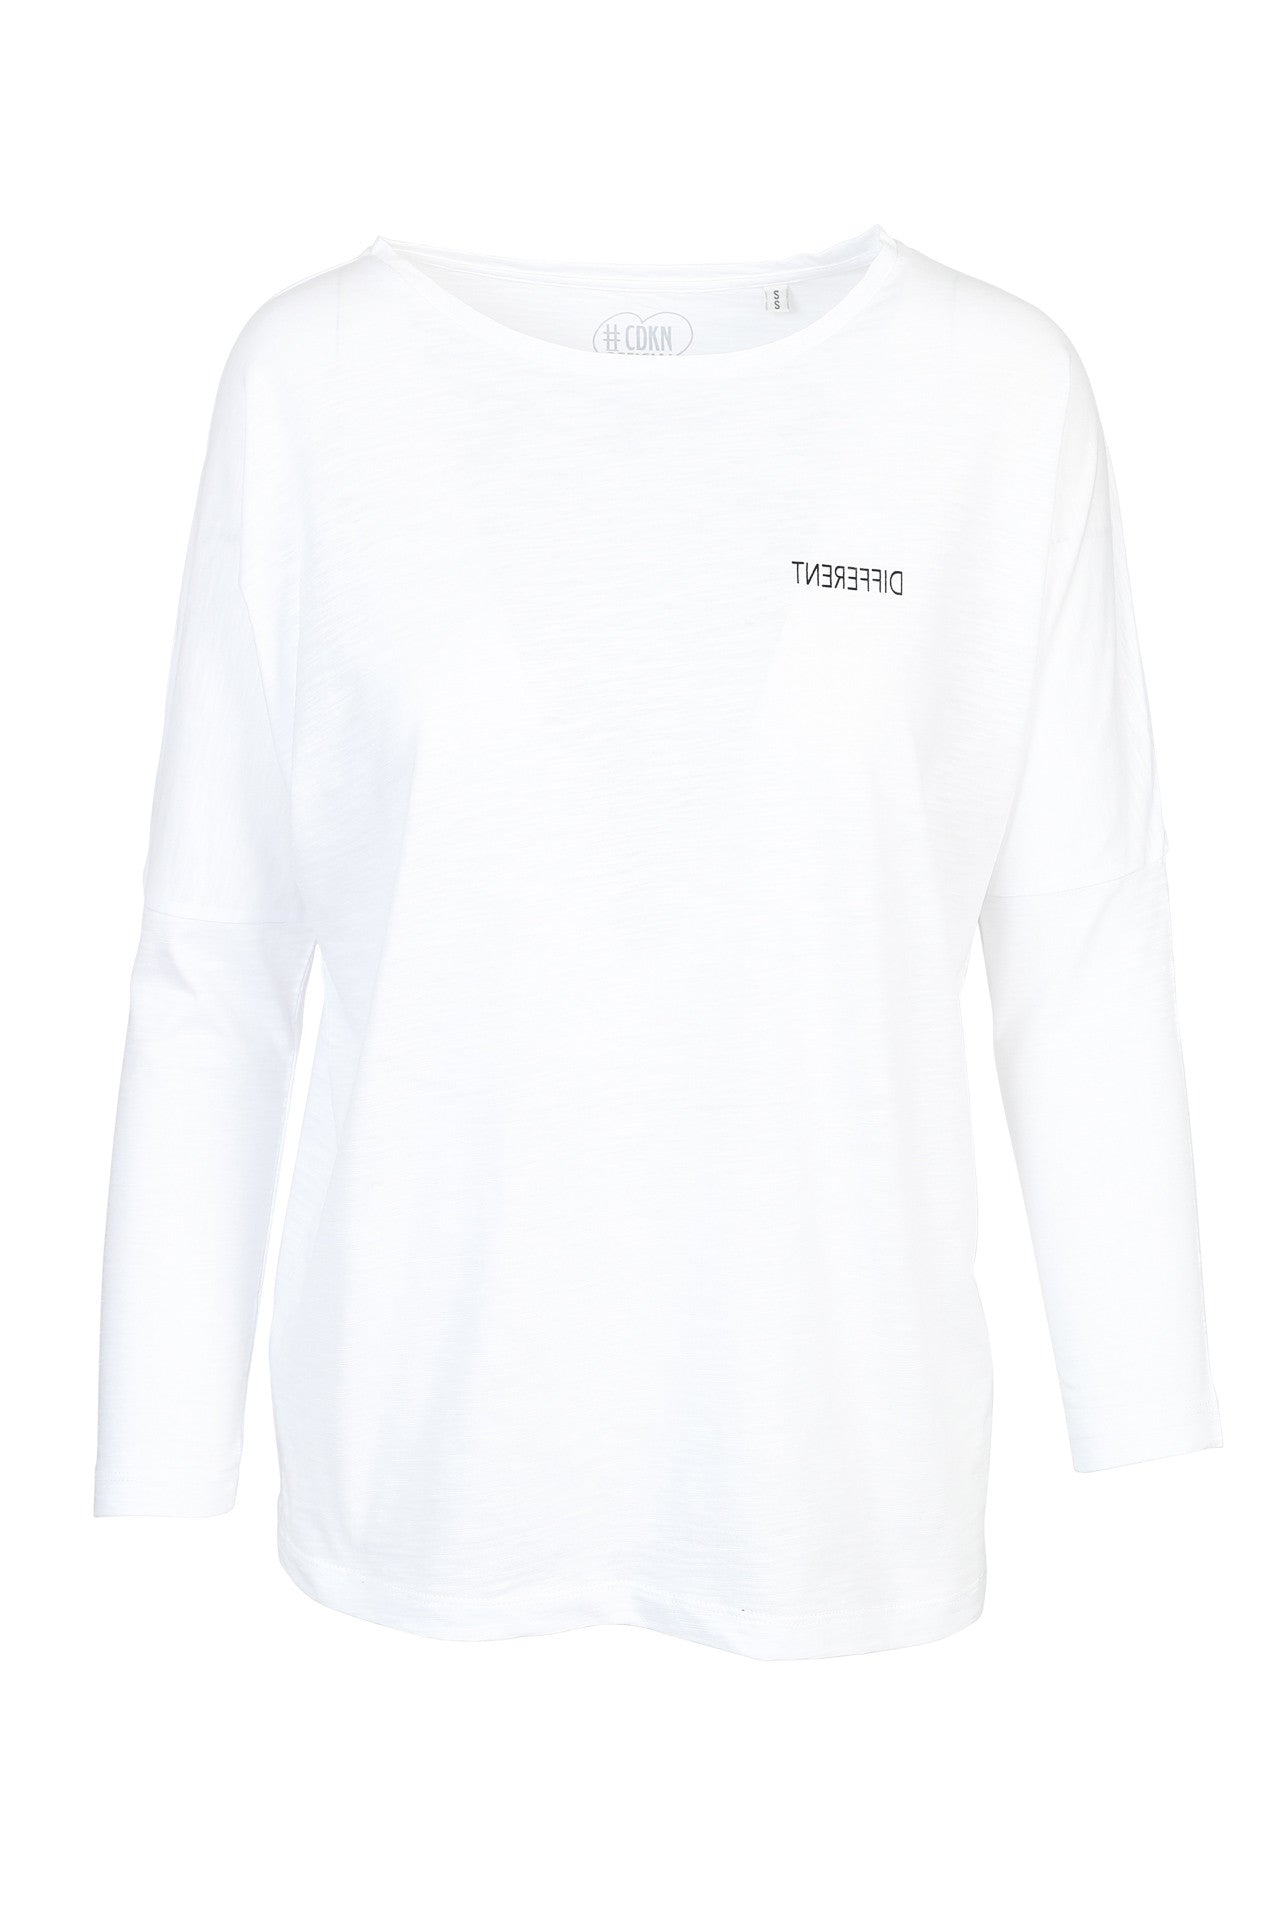 Different - Dropped shoulder tee